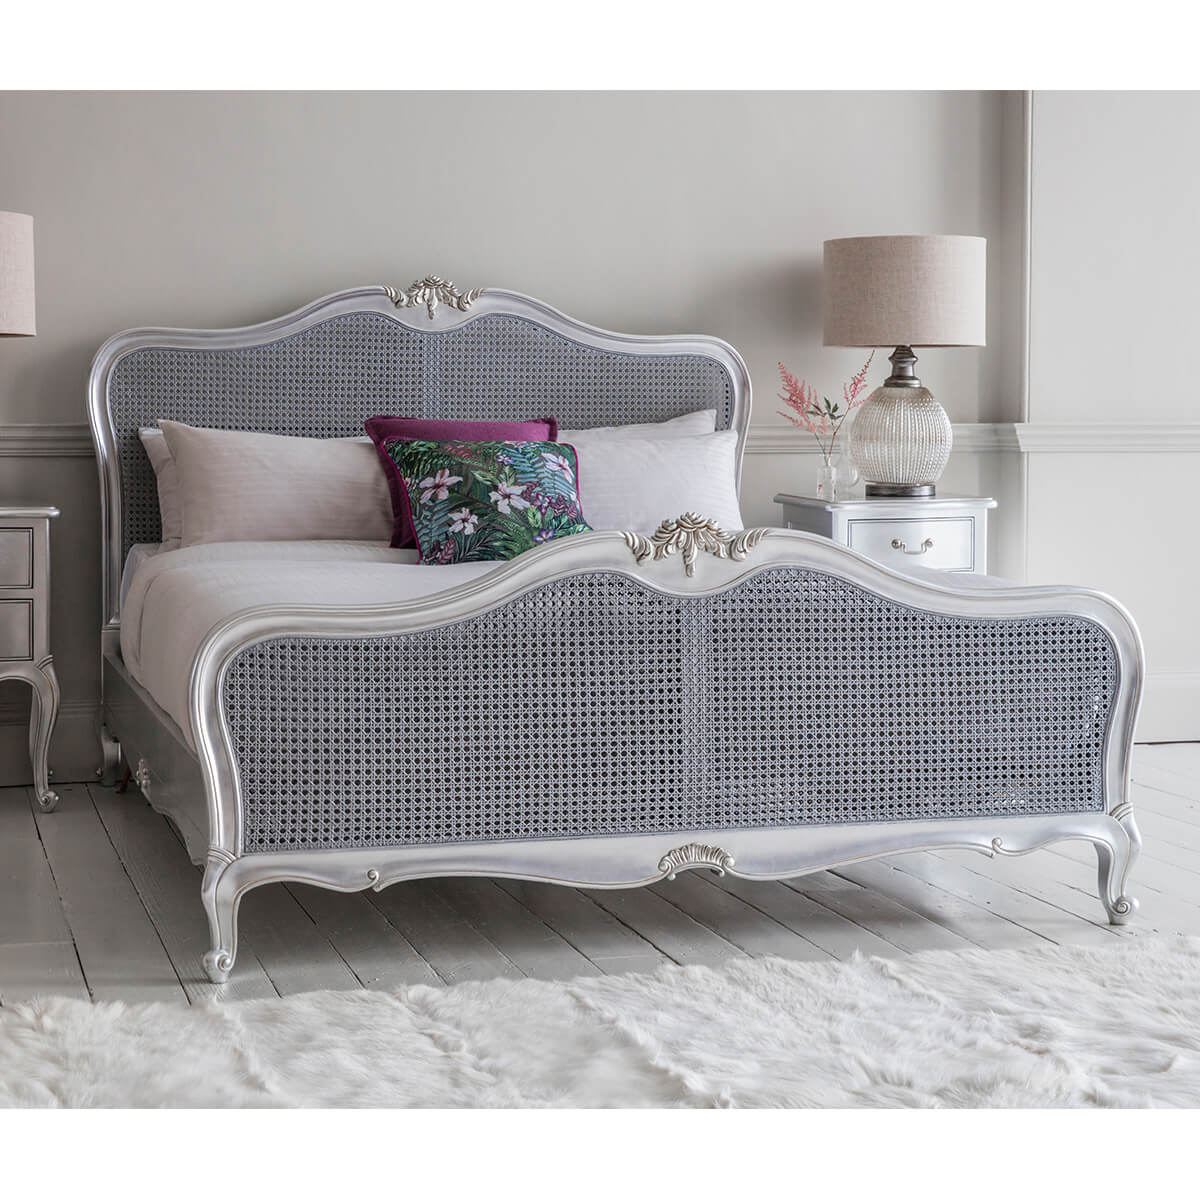 Madeleine French Rococo Bed Silver Leaf 5 6 Fads